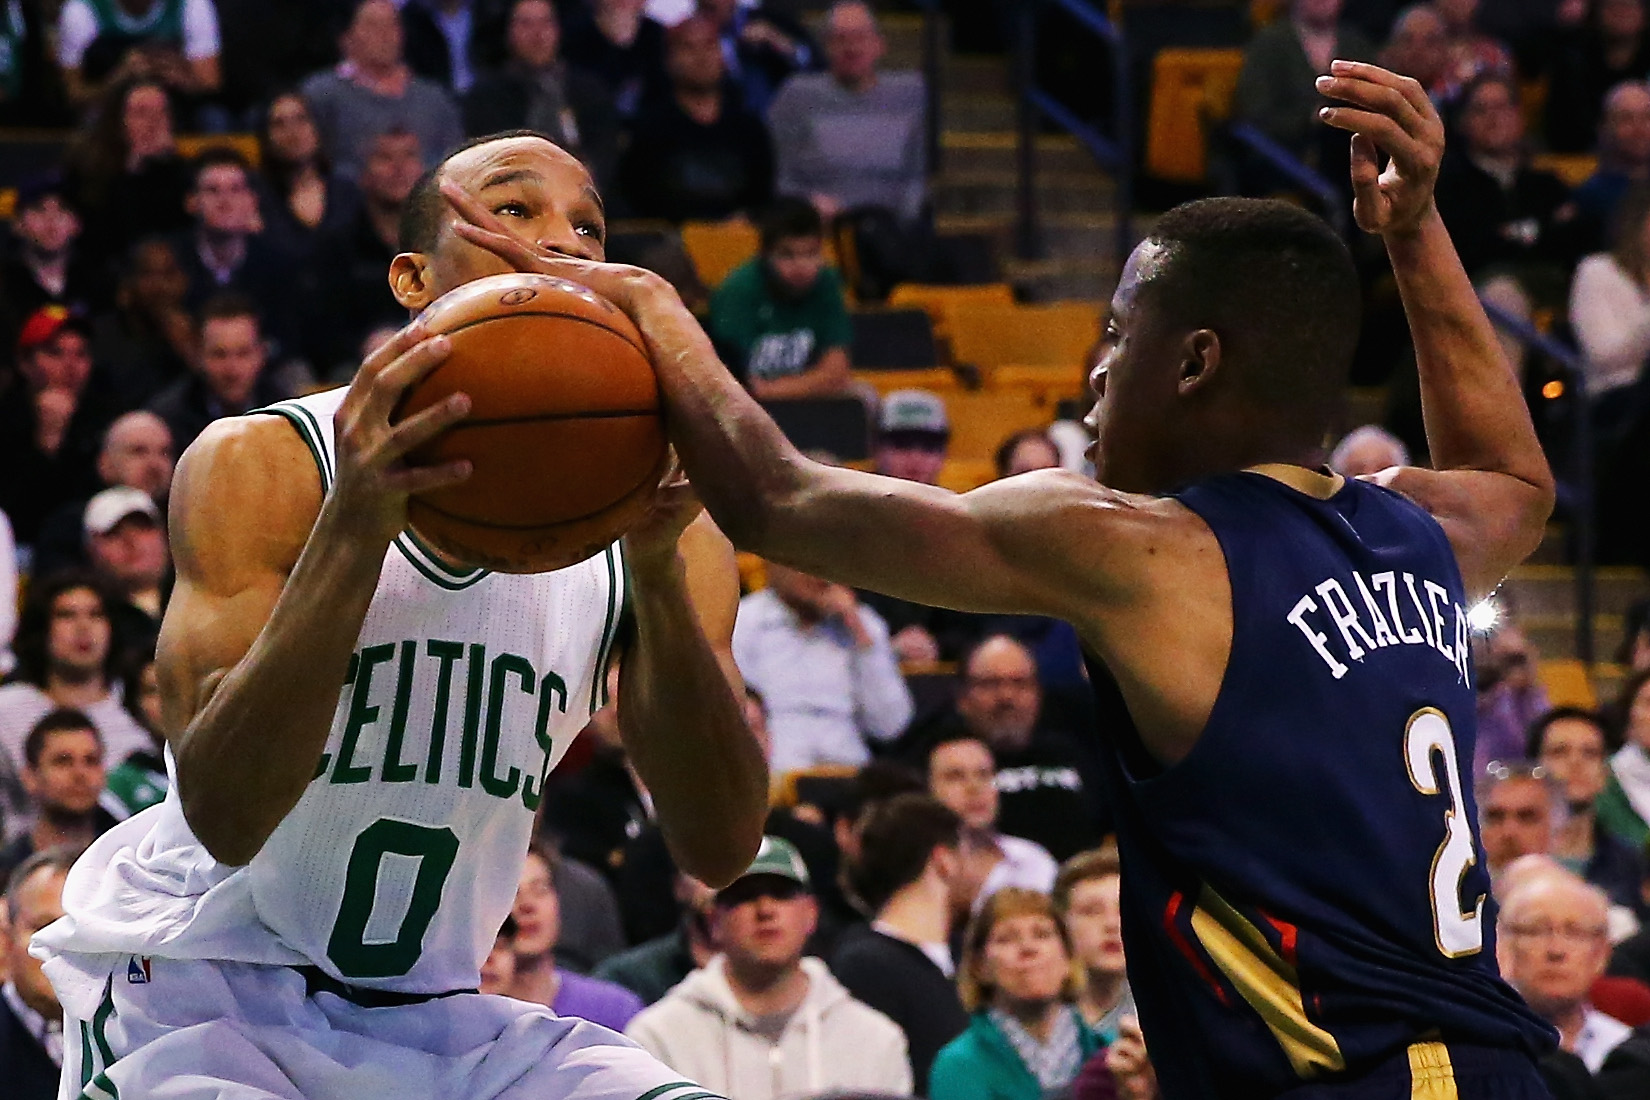 BOSTON, MASSACHUSETTS - APRIL 06:  Tim Frazier #2 of the New Orleans Pelicans blocks a shot by Avery Bradley #0 of the Boston Celtics during the fourth quarter at TD Garden on April 6, 2016 in Boston, Massachusetts. The Celtics defeat the Pelicans 104-97.